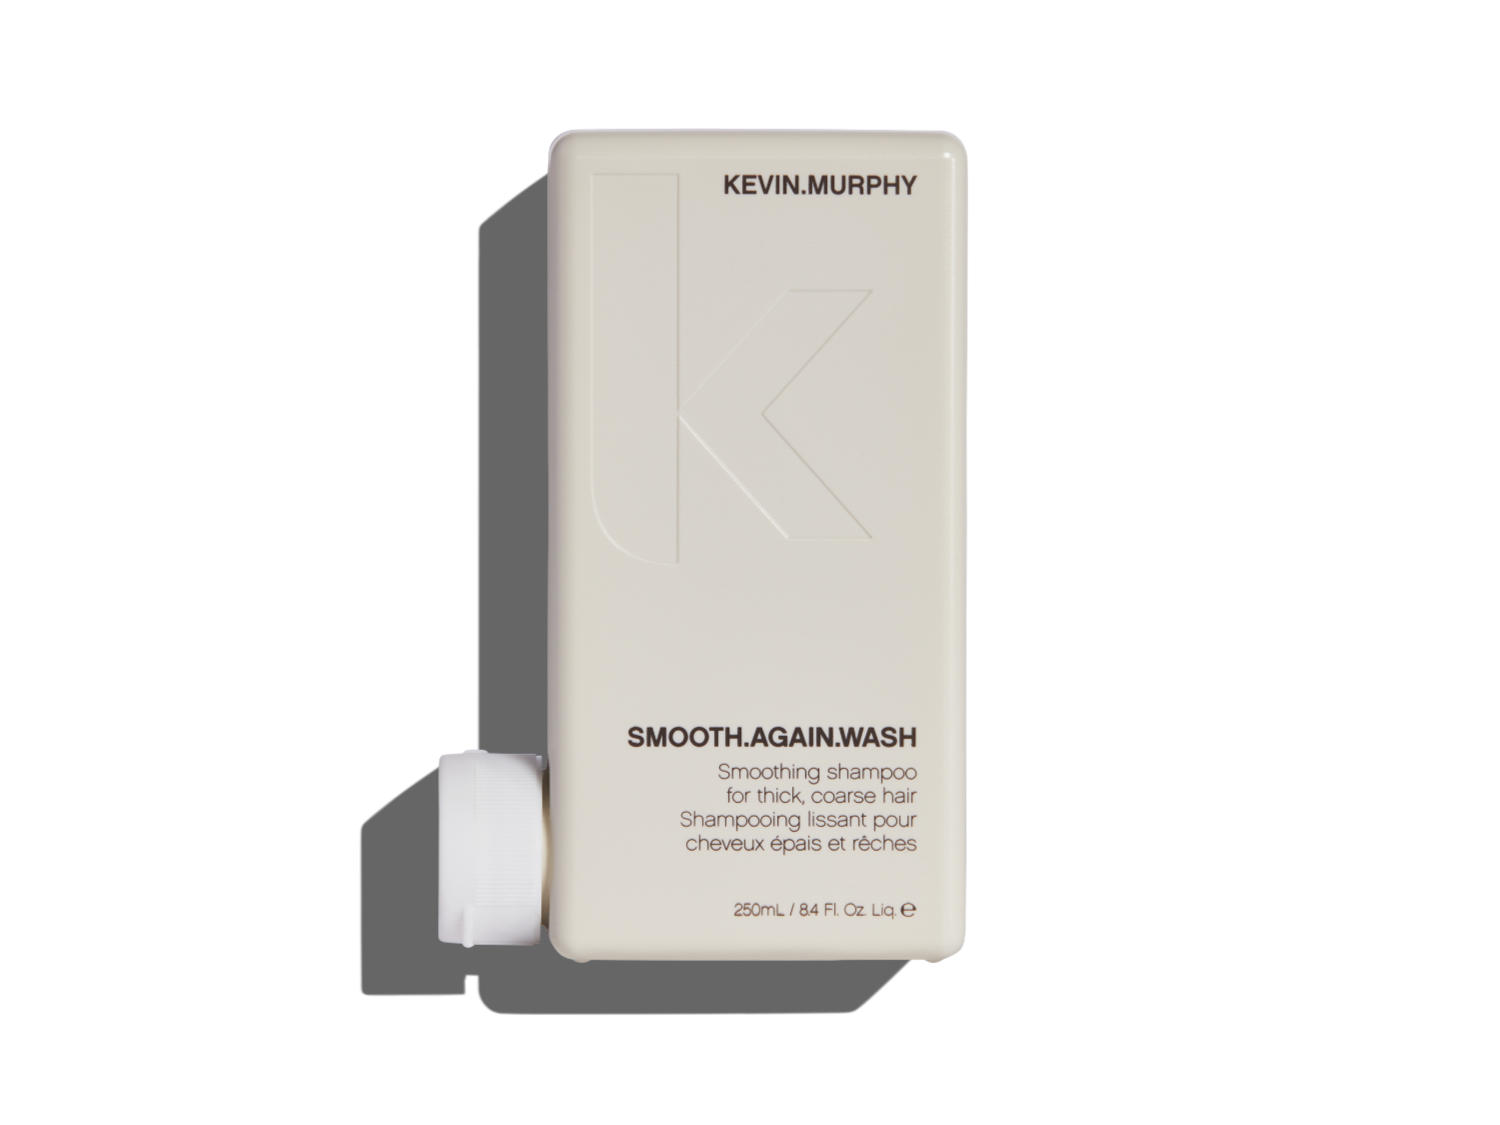 Arma Beauty - Kevin Murphy - SMOOTH.AGAIN.WASH